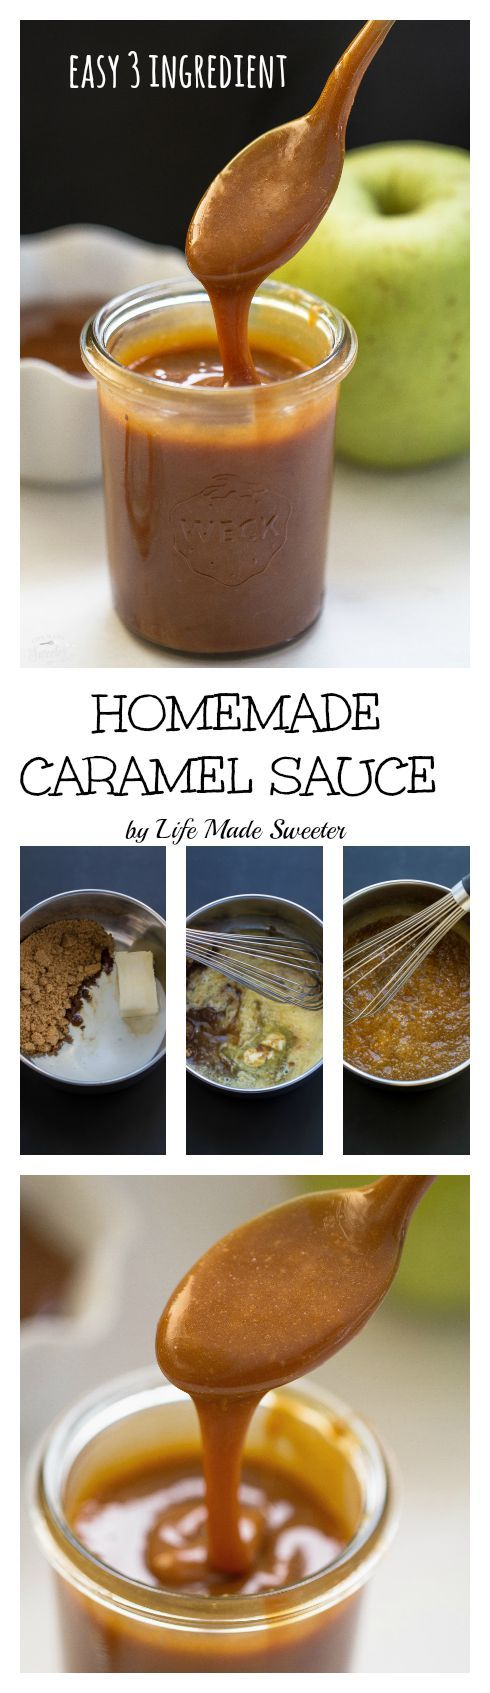 Homemade Caramel Sauce is so easy to make with only 3 ingredients!! No candy thermometer needed and step-by-step photos to show you how simple it is! Makes the best compliment to any dessert and perfect for drizzling on some ice cream!